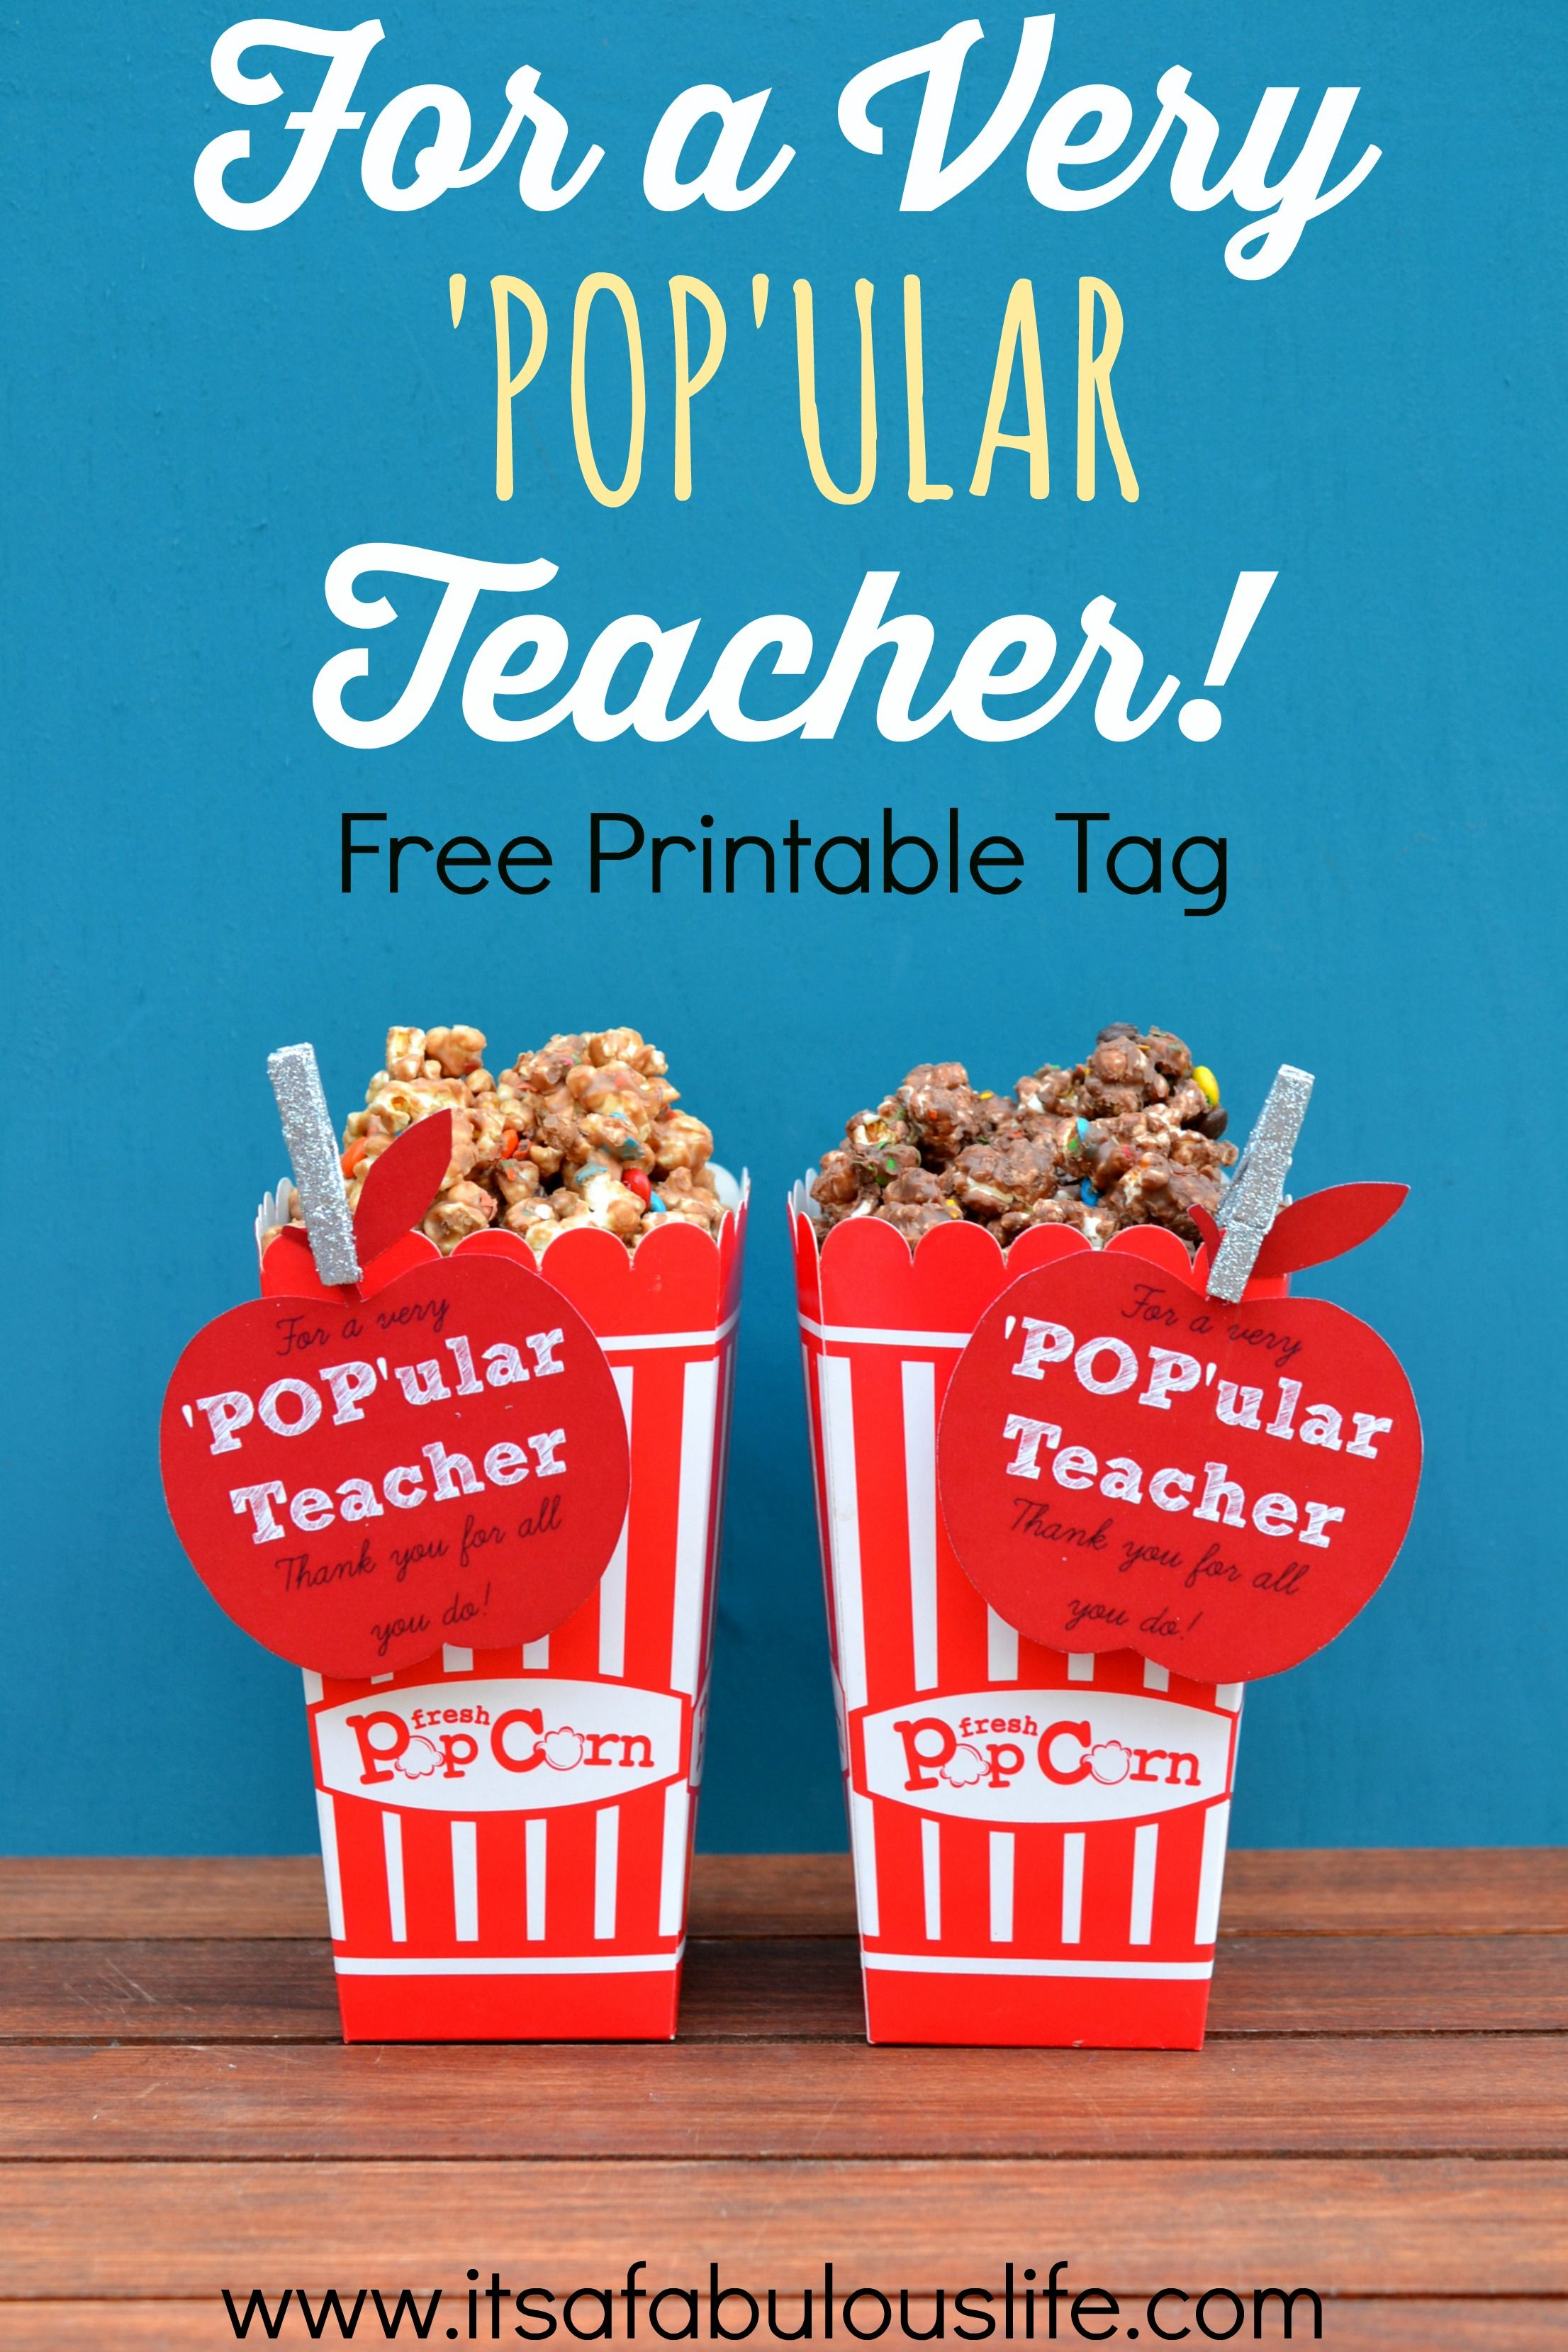 For A Very 'pop'ular Teacher Free Printable Tag For Teacher - Free Popcorn Teacher Appreciation Printable